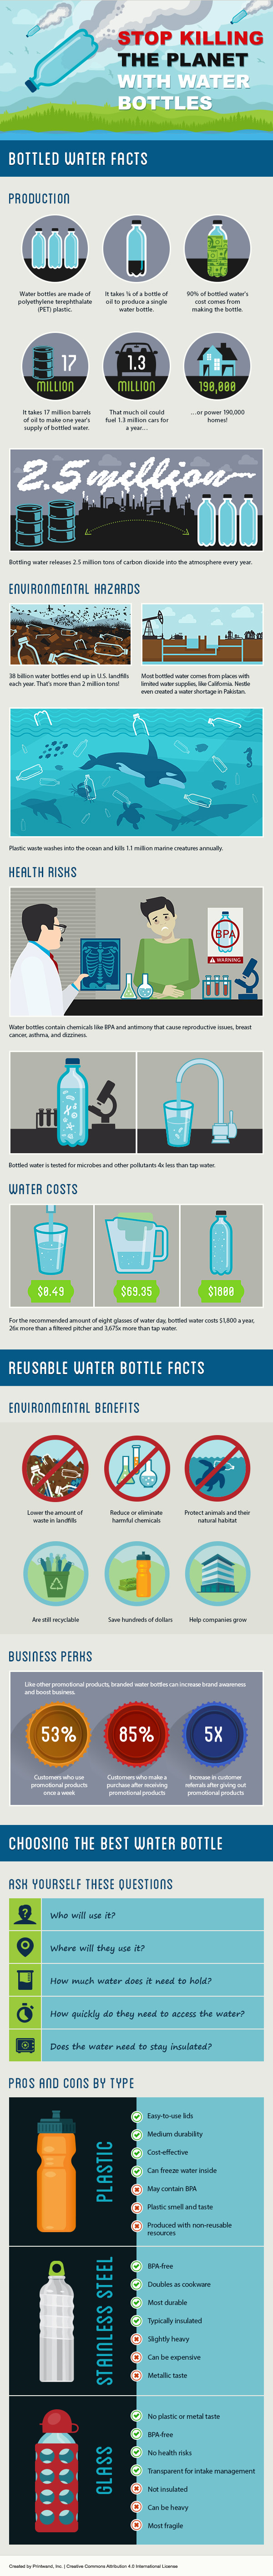 plastic water bottle recycling infographic